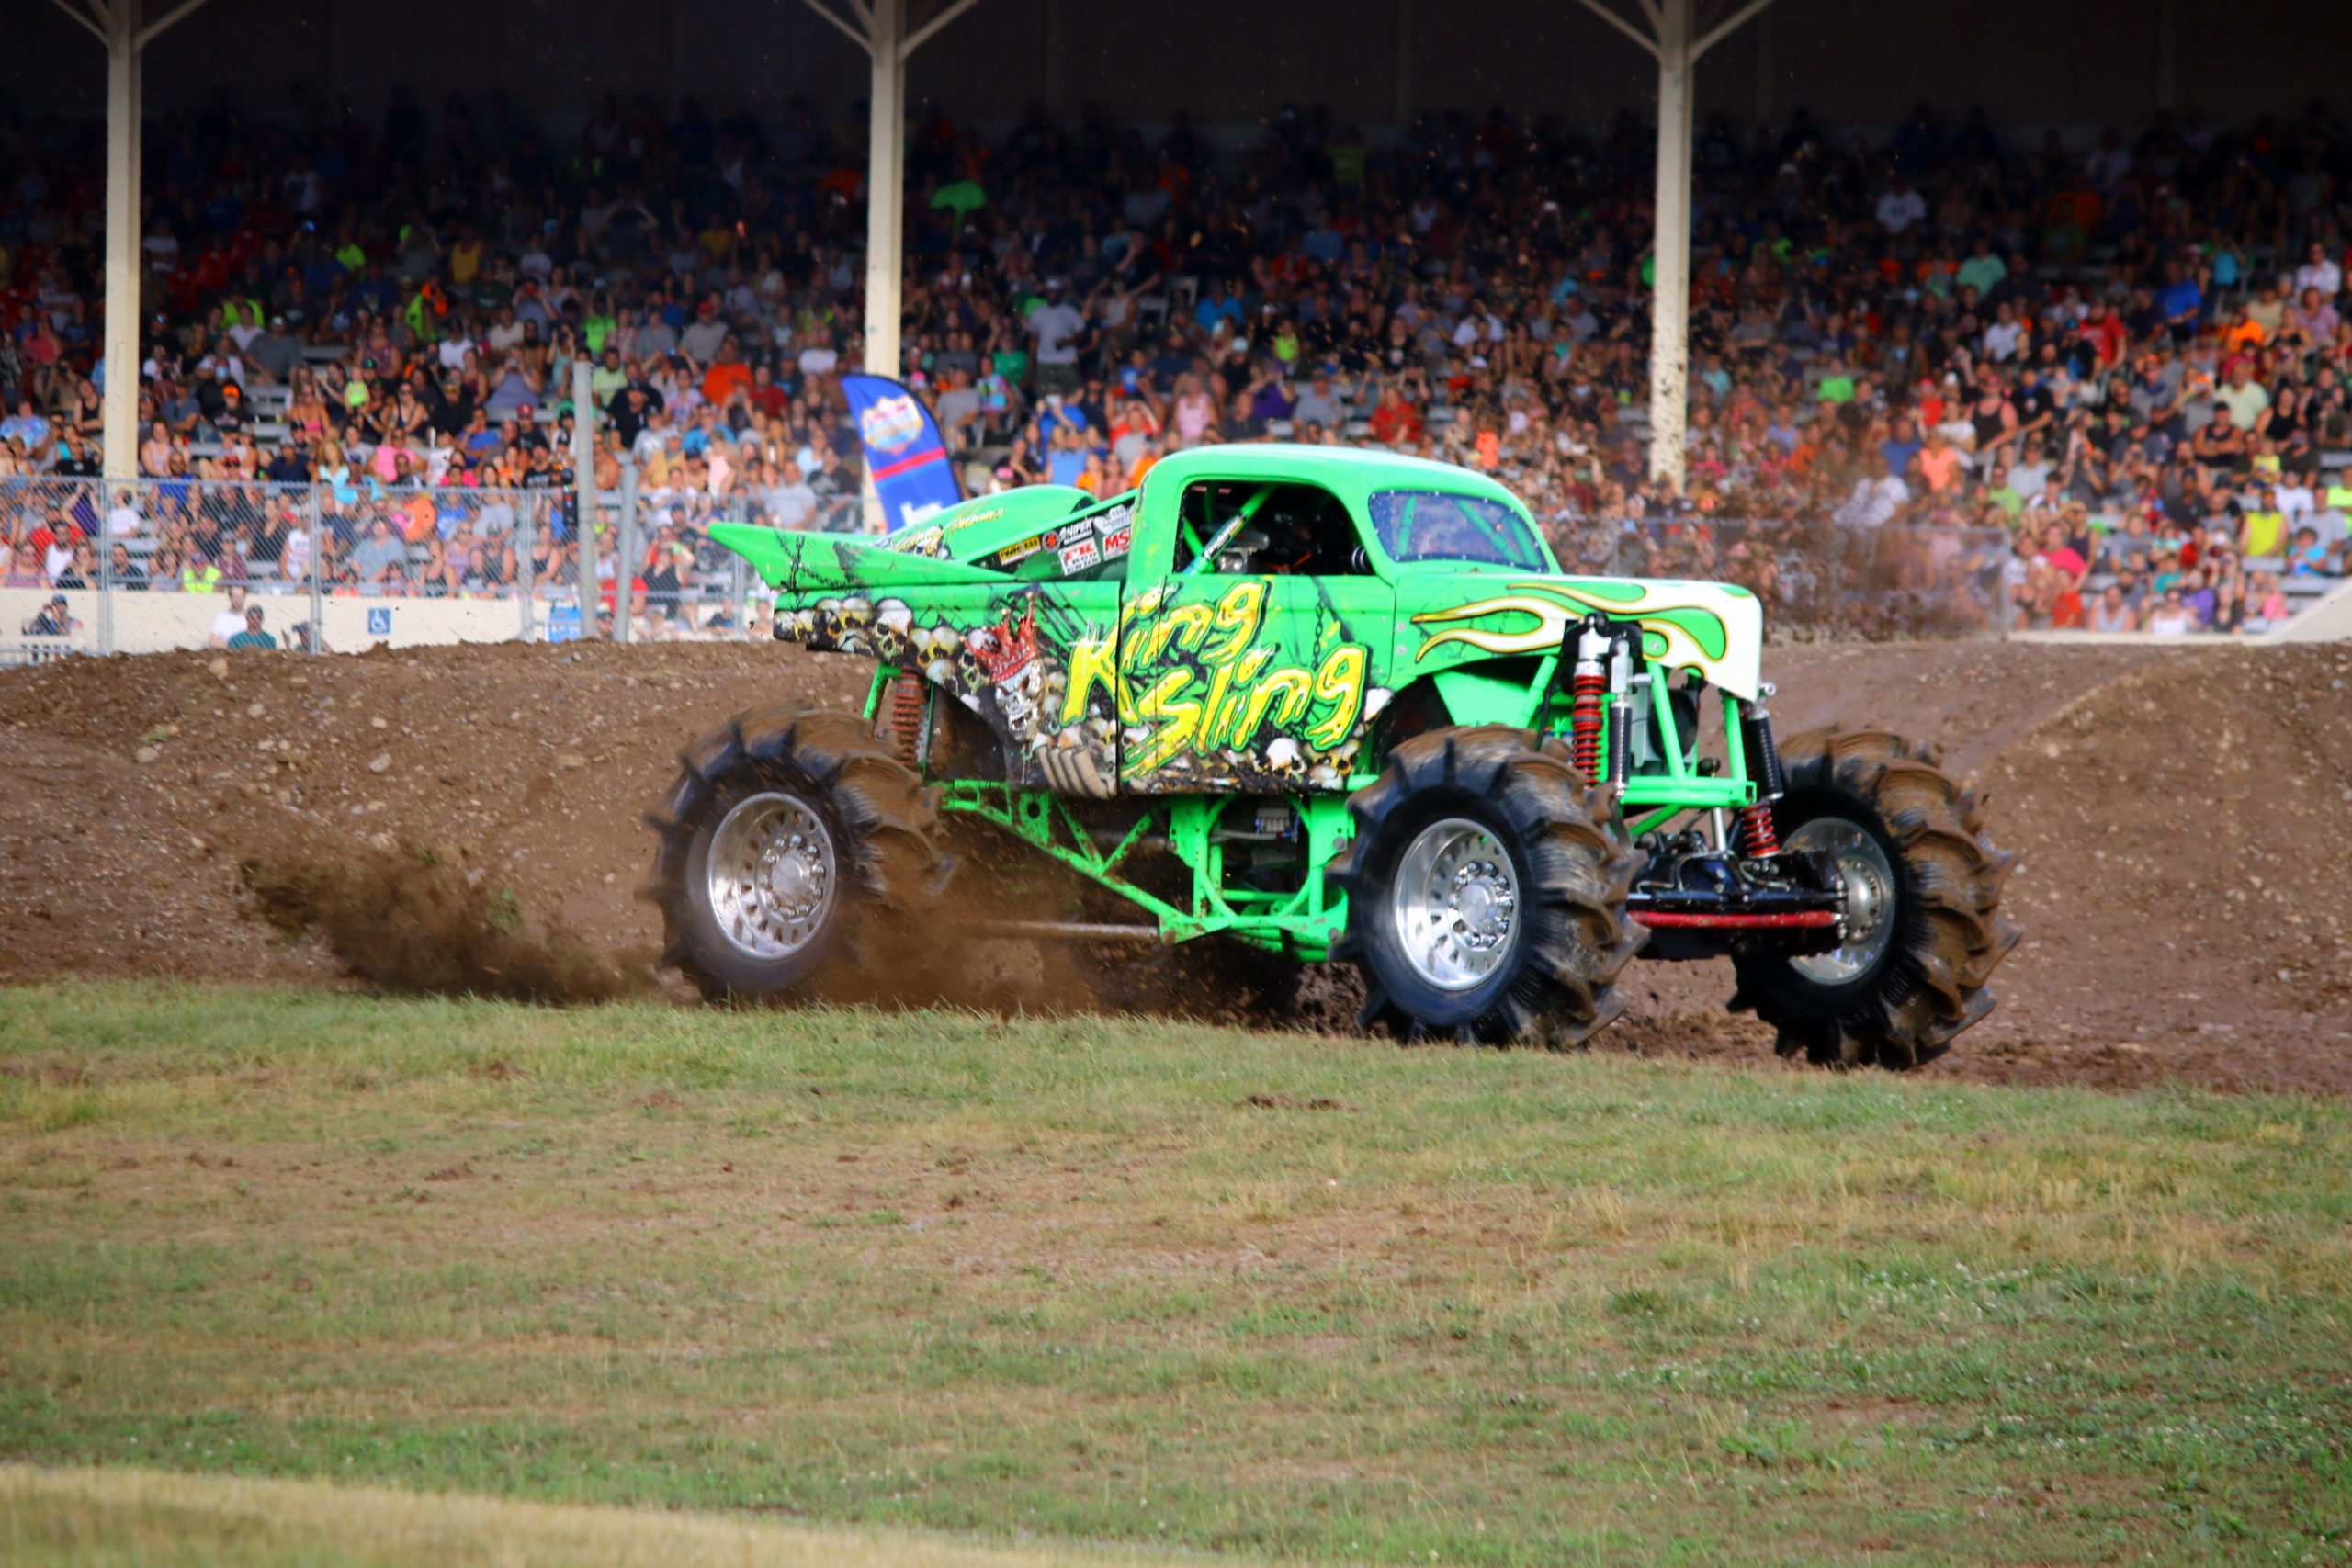 Dennis Anderson Returns to Driver's Seat with Mega Trucks at Indy 4-Wheel Jamboree